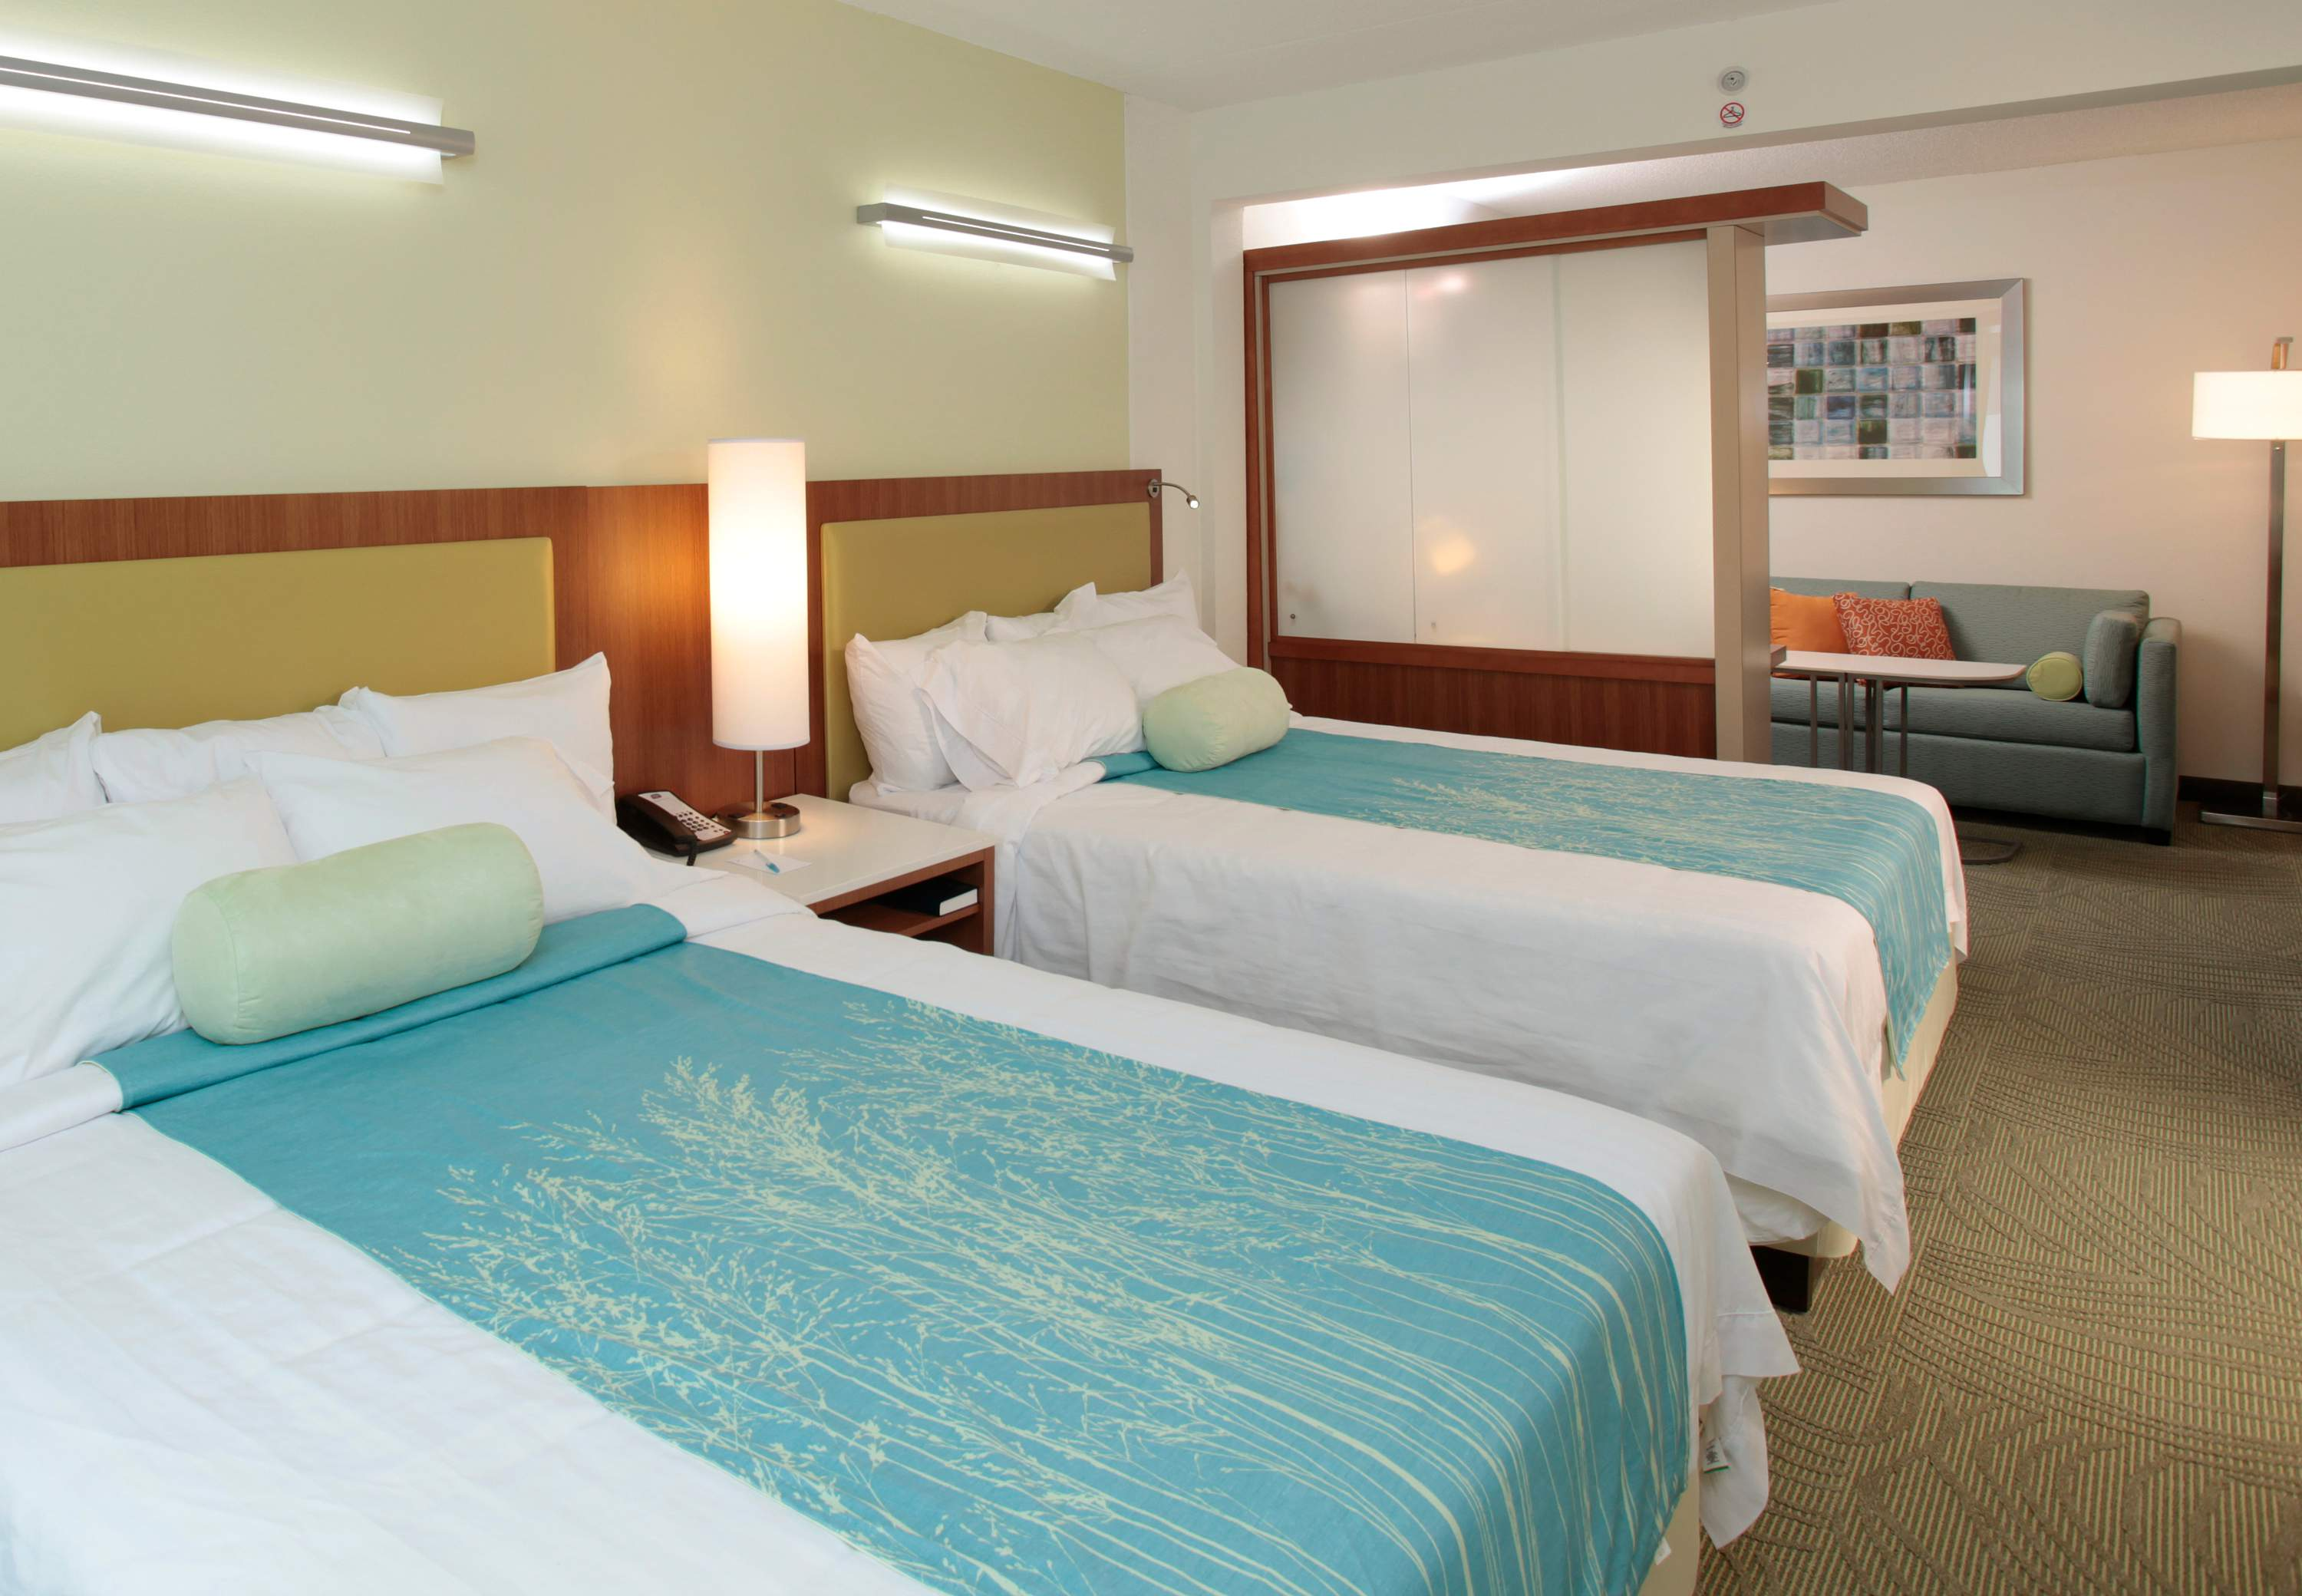 SpringHill Suites by Marriott Athens West image 1